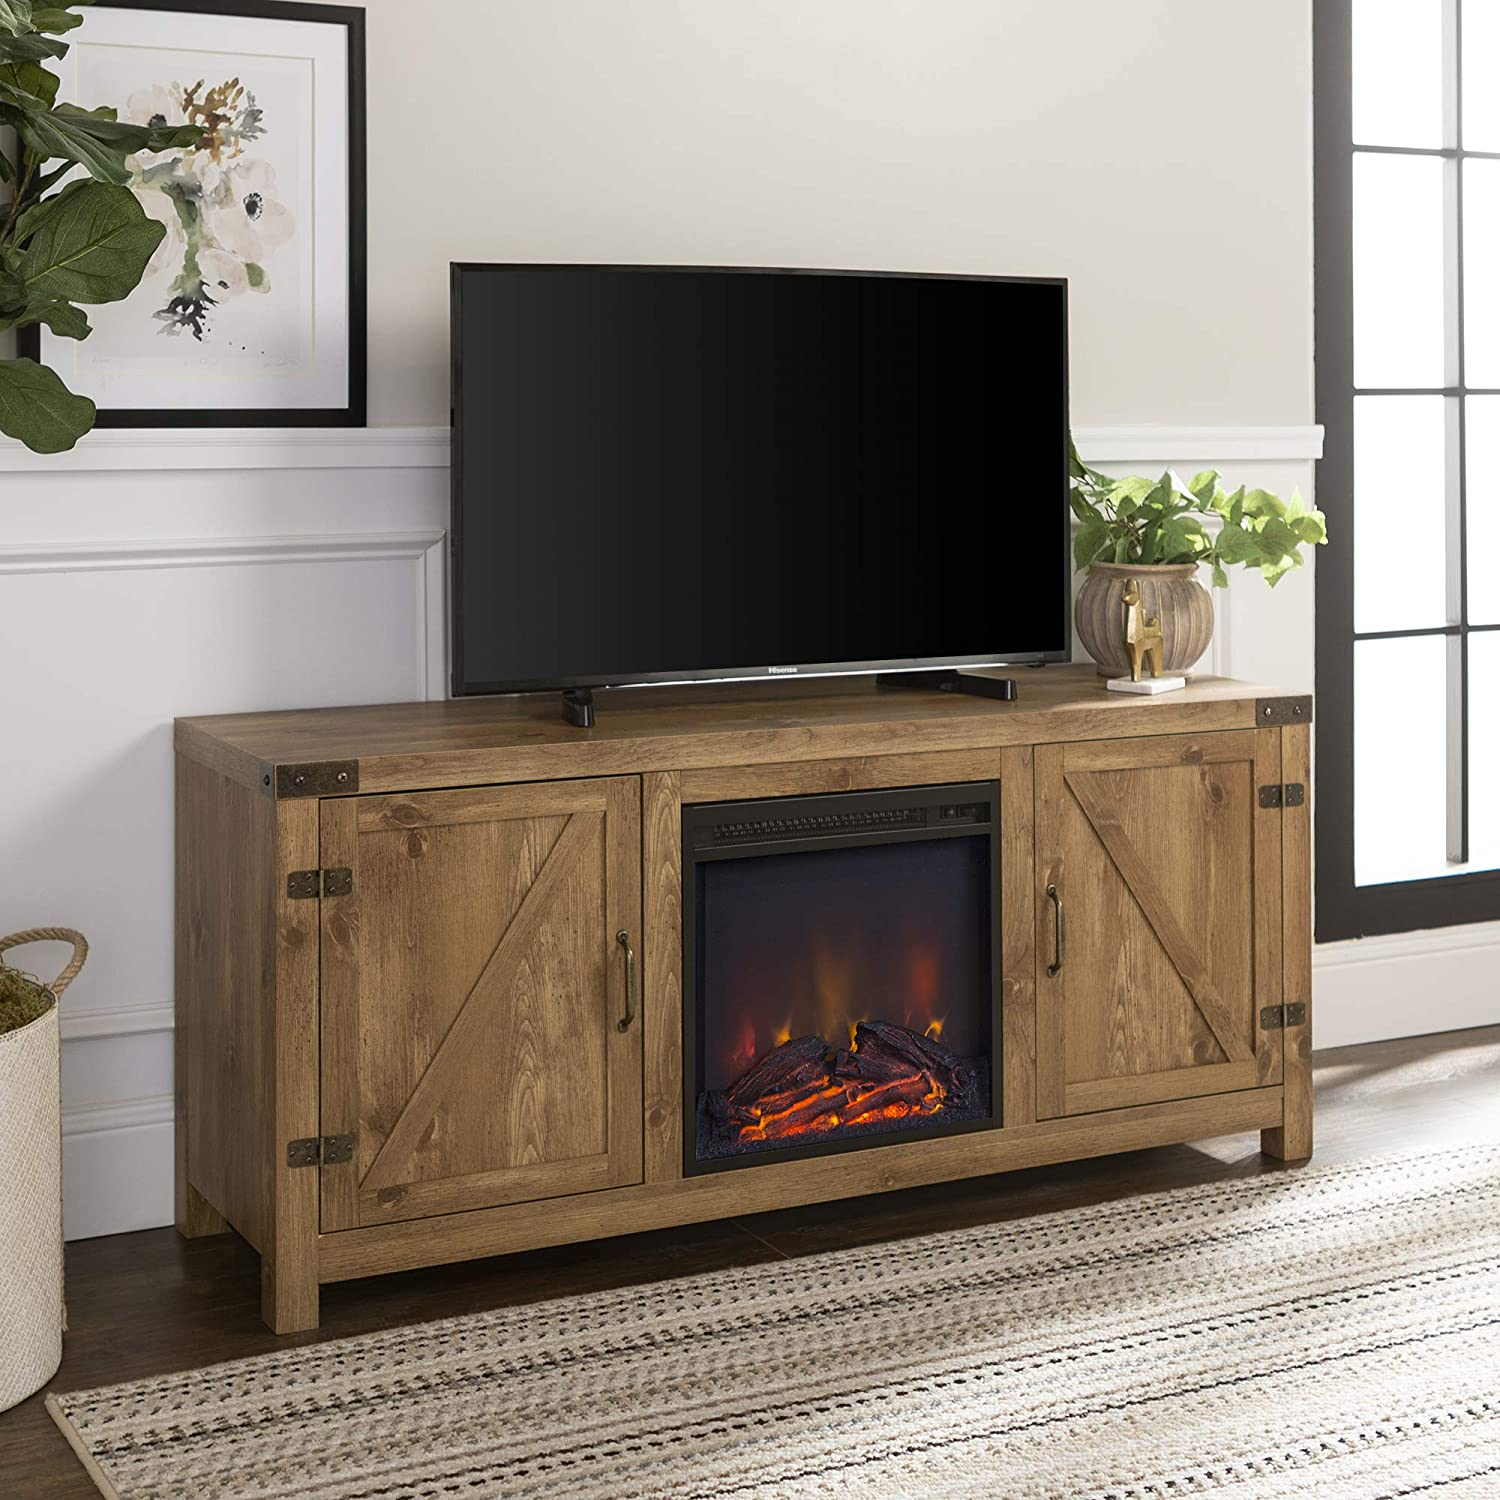 Walker Edison Farmhouse Barn Wood Fireplace Stand for TV's up to 64